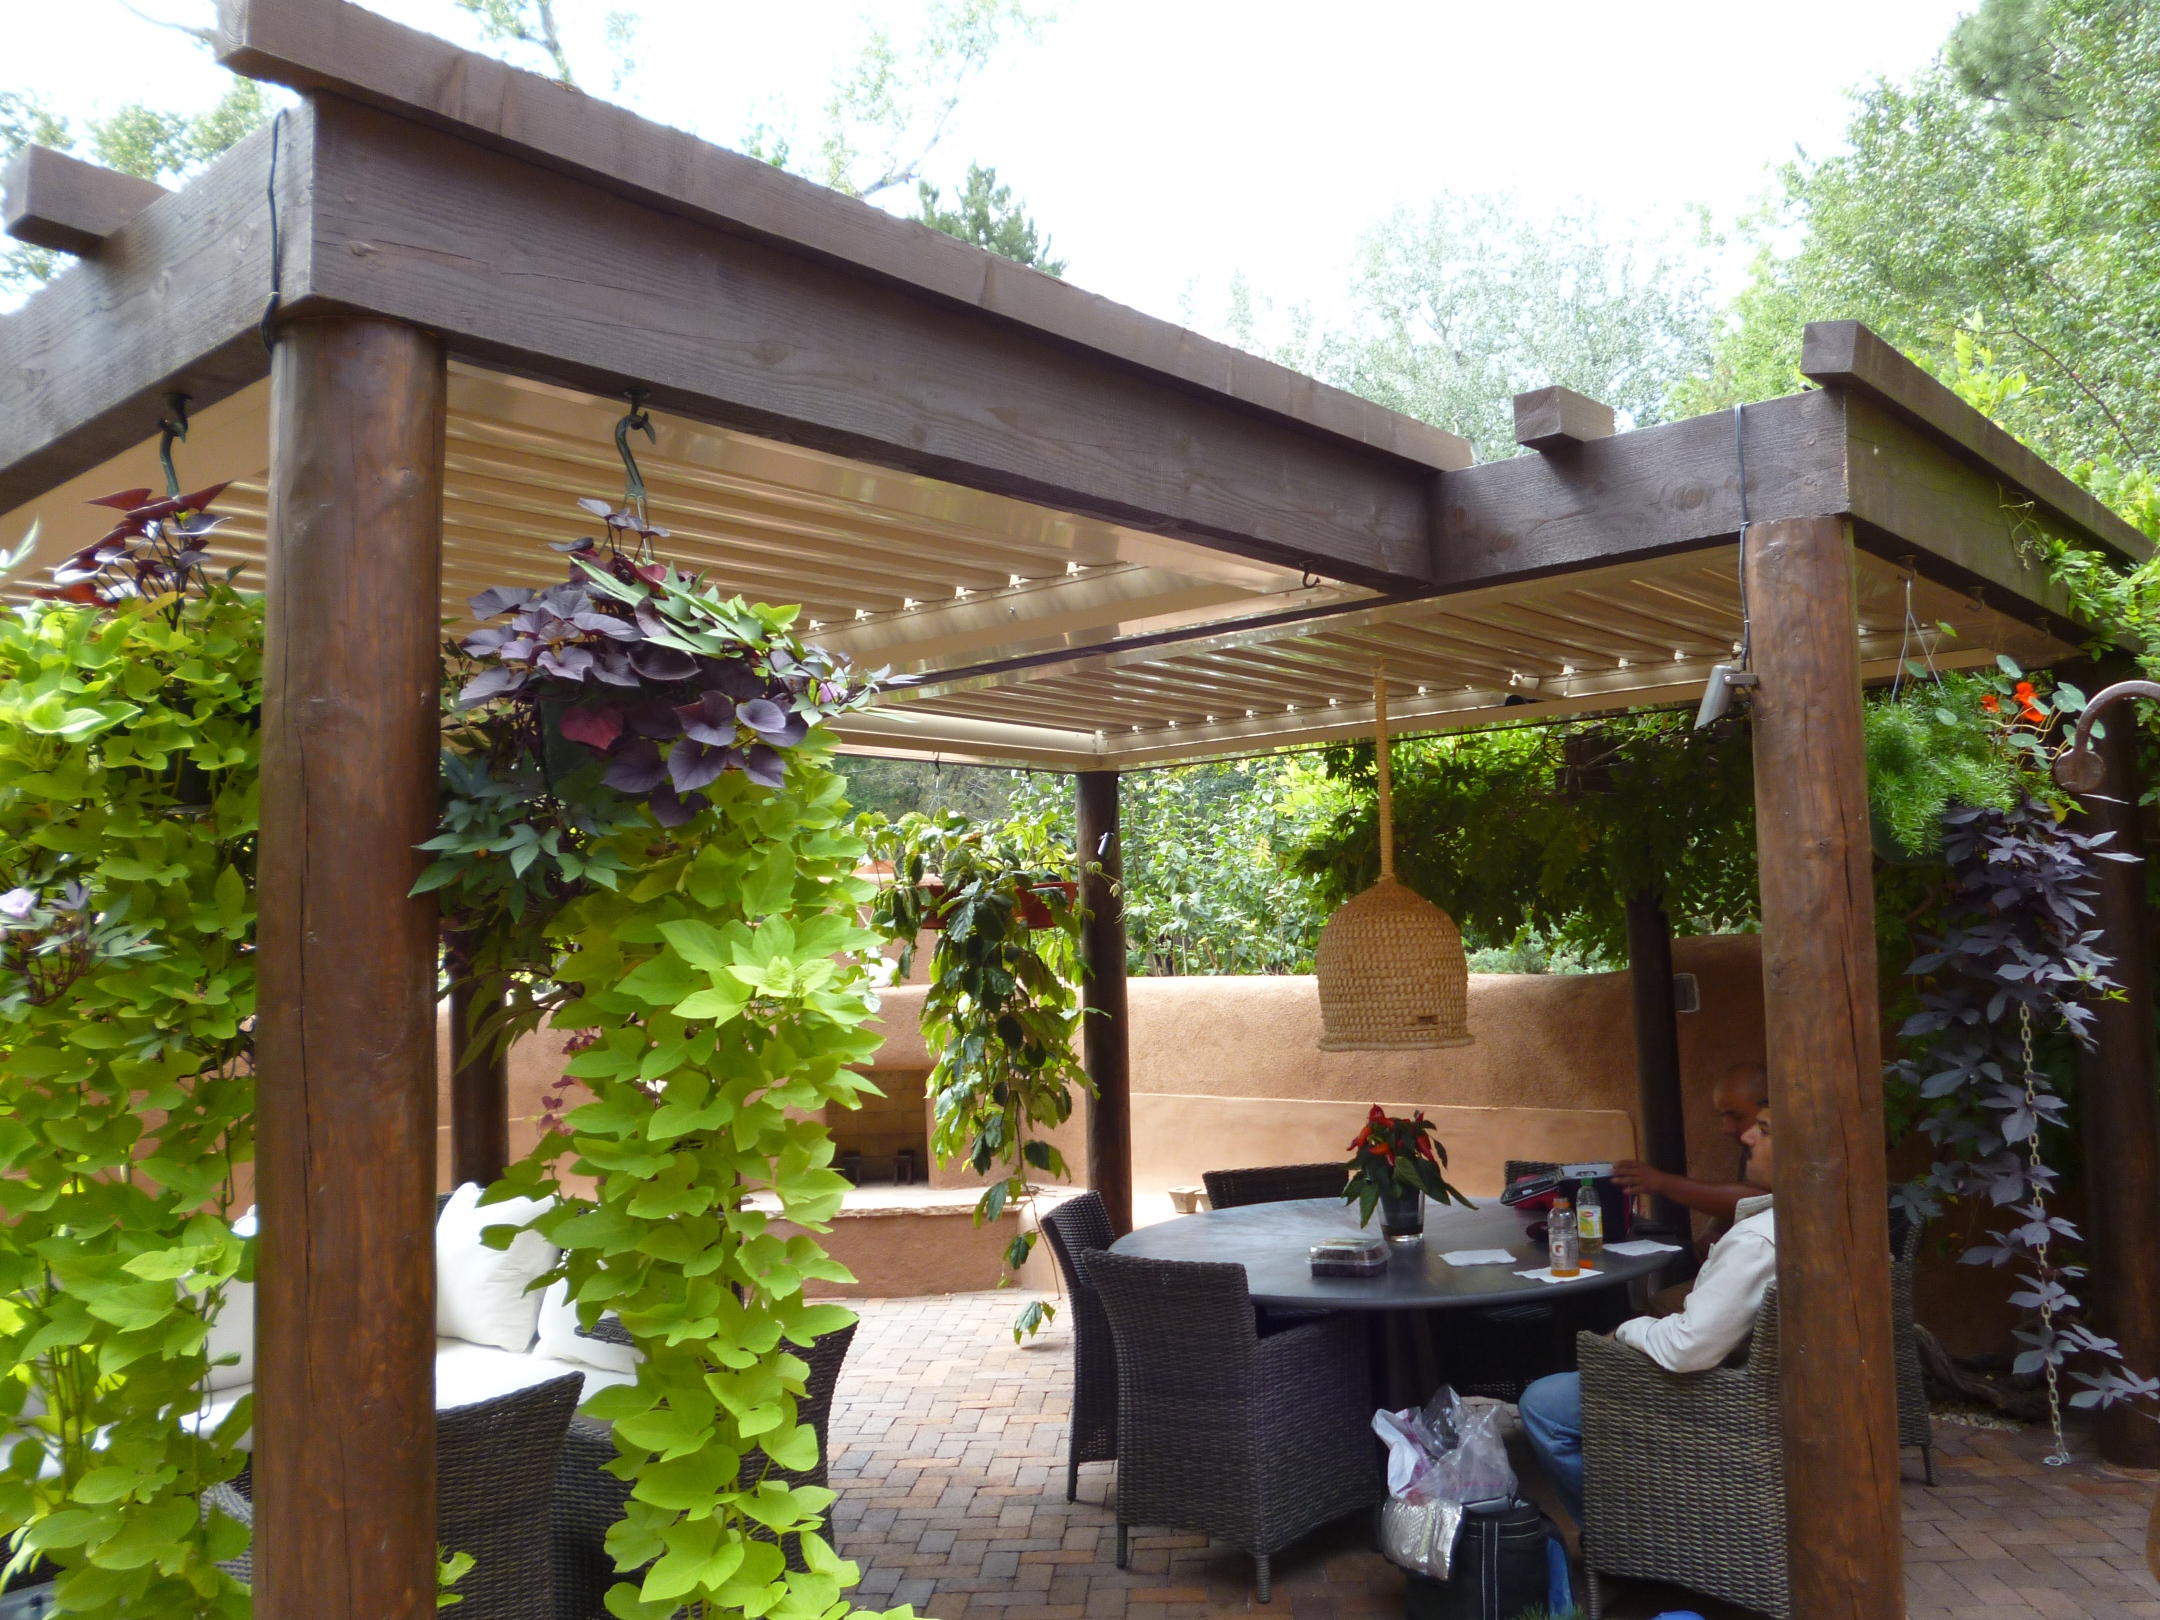 Natural Wooden Patio Covers - HomesFeed on Backyard Patio Cover Ideas  id=78155